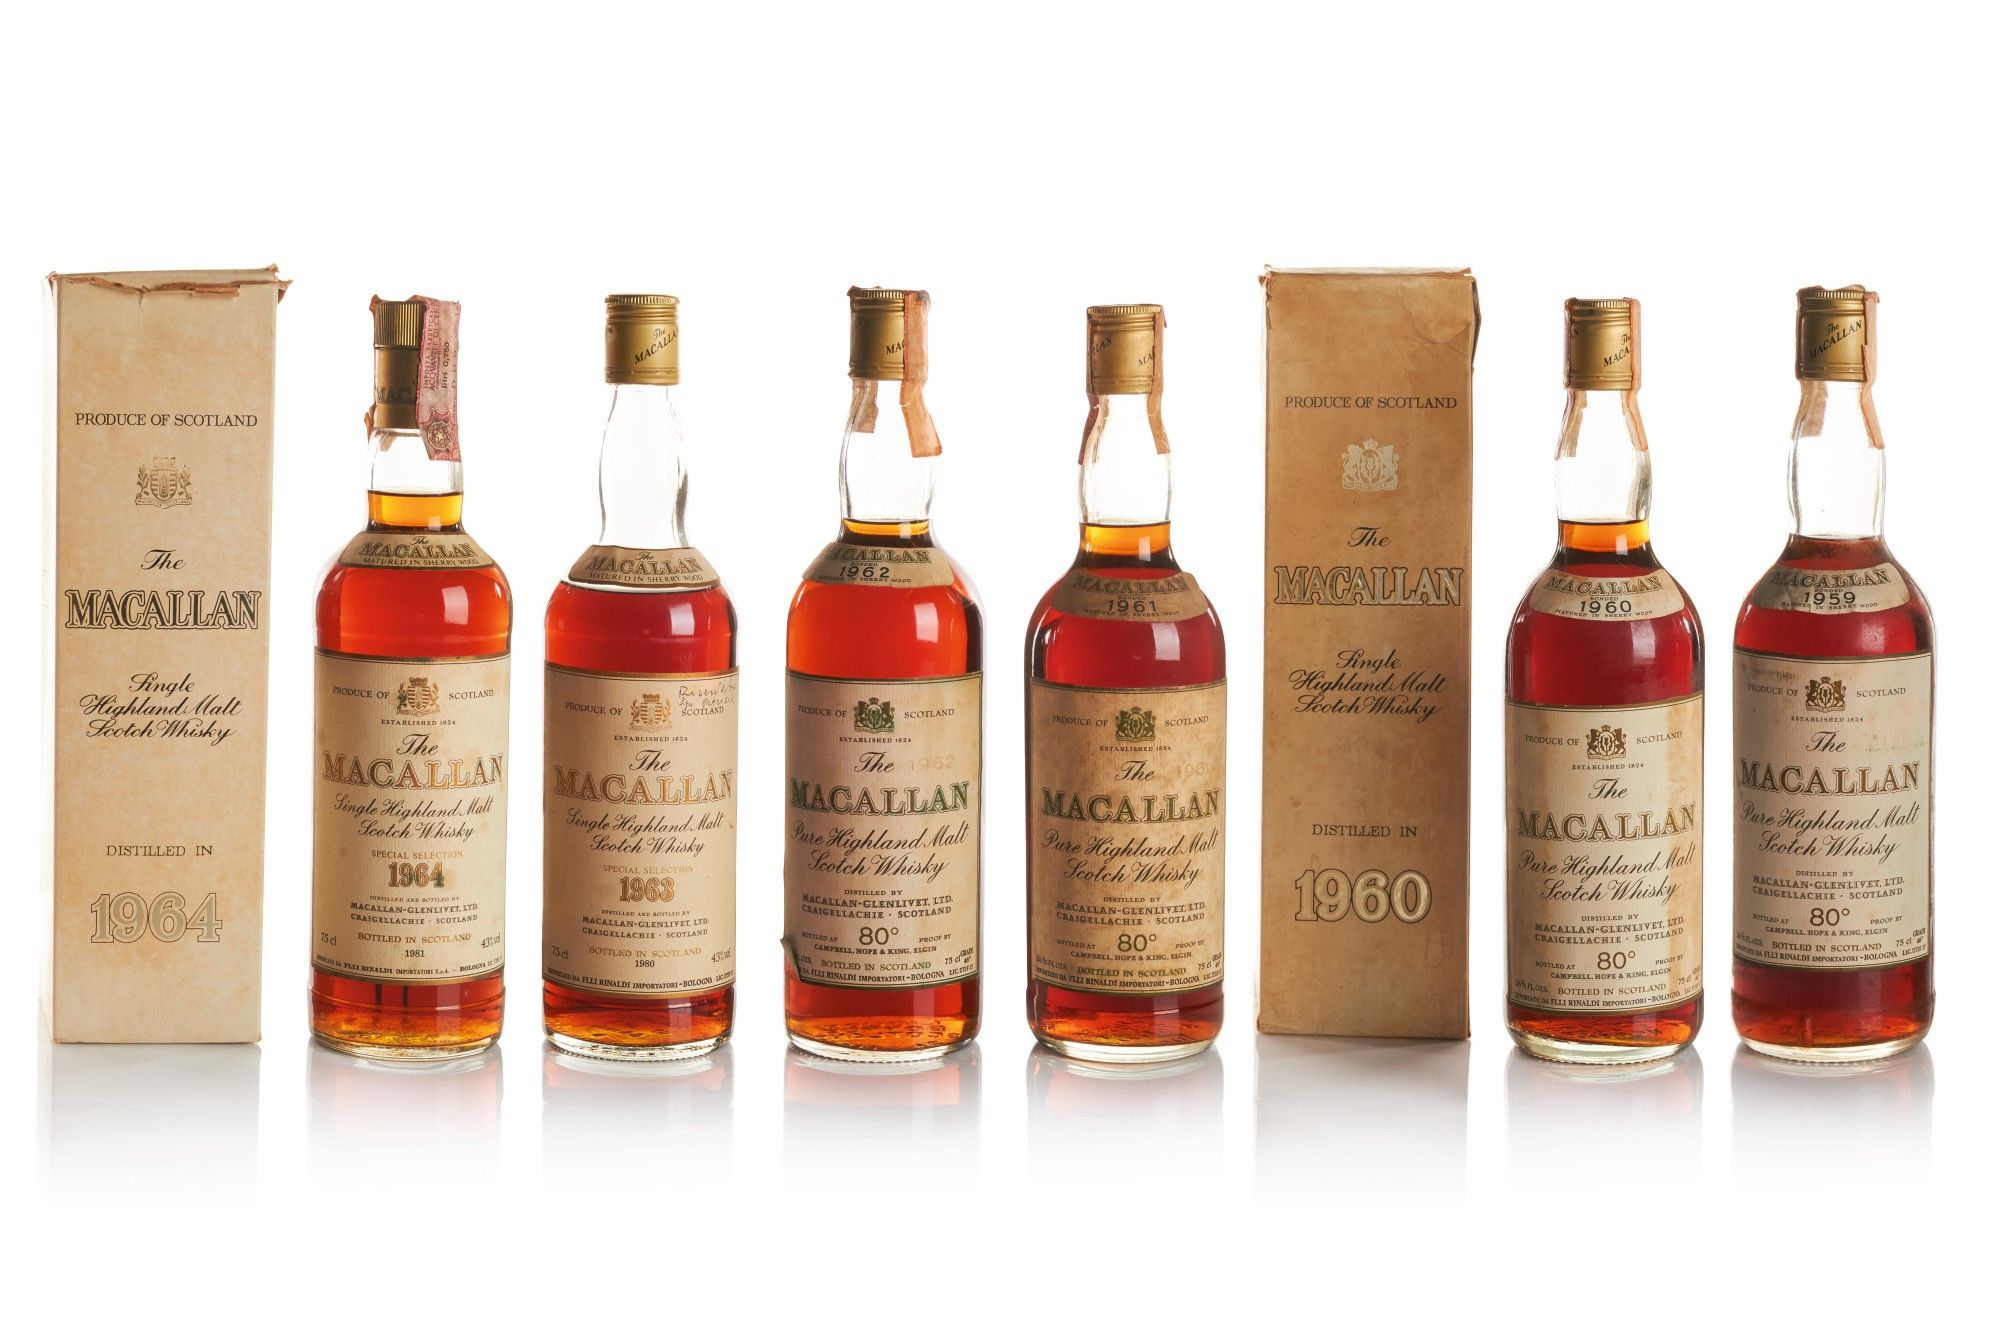 THE MACALLAN 18 YEAR OLD 43.0 ABV 1961